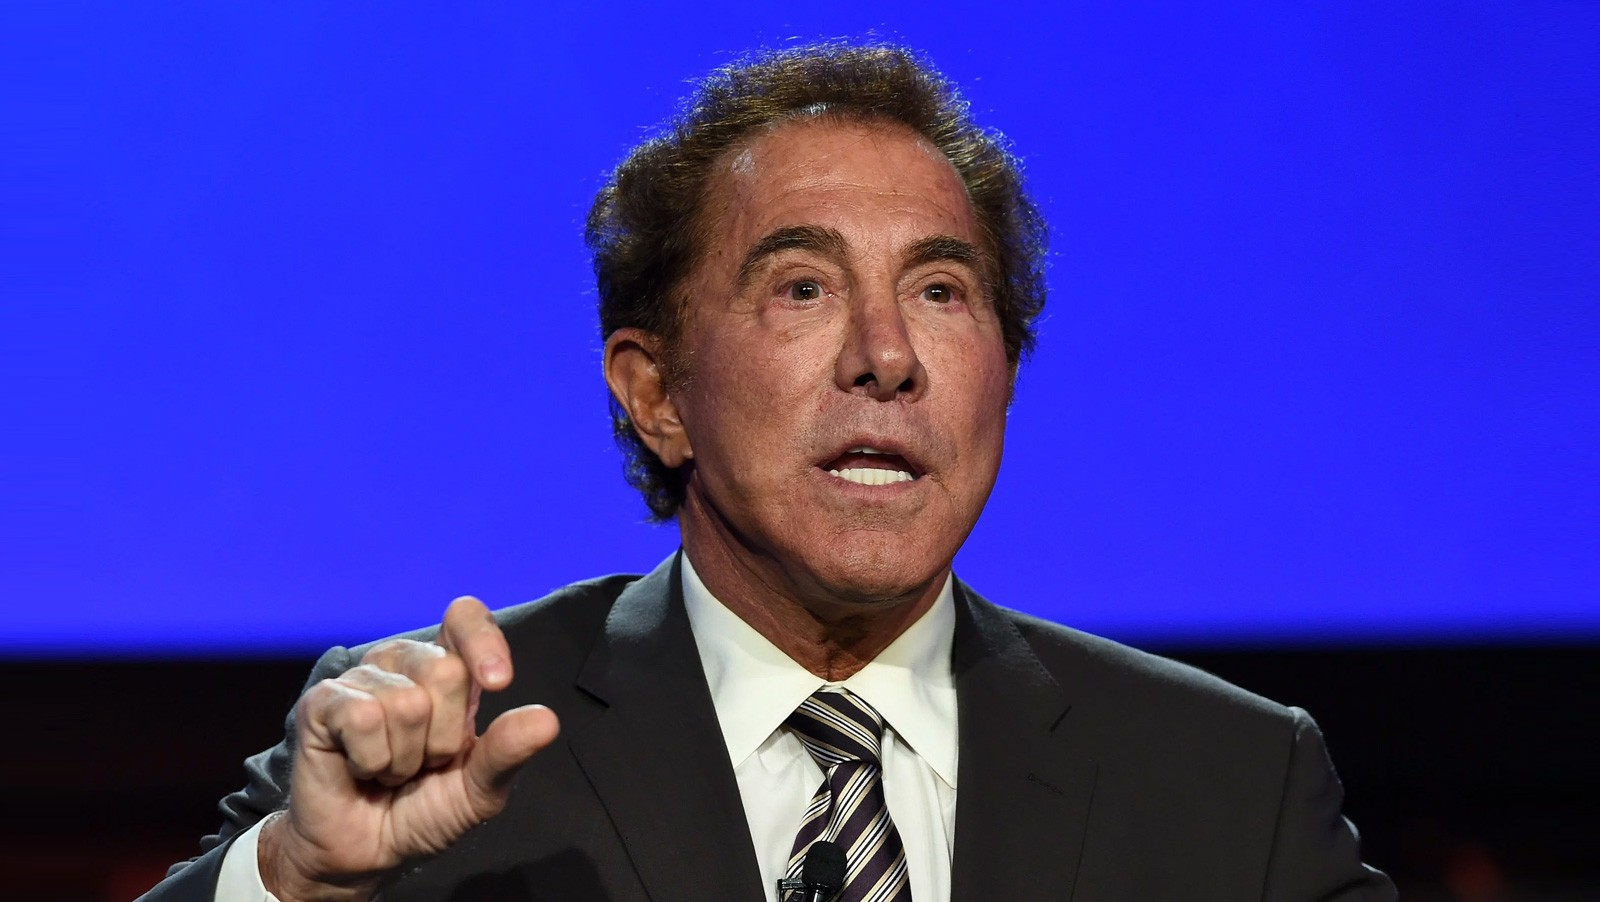 It's his turn: Steve Wynn sues ex-casino worker for defamation